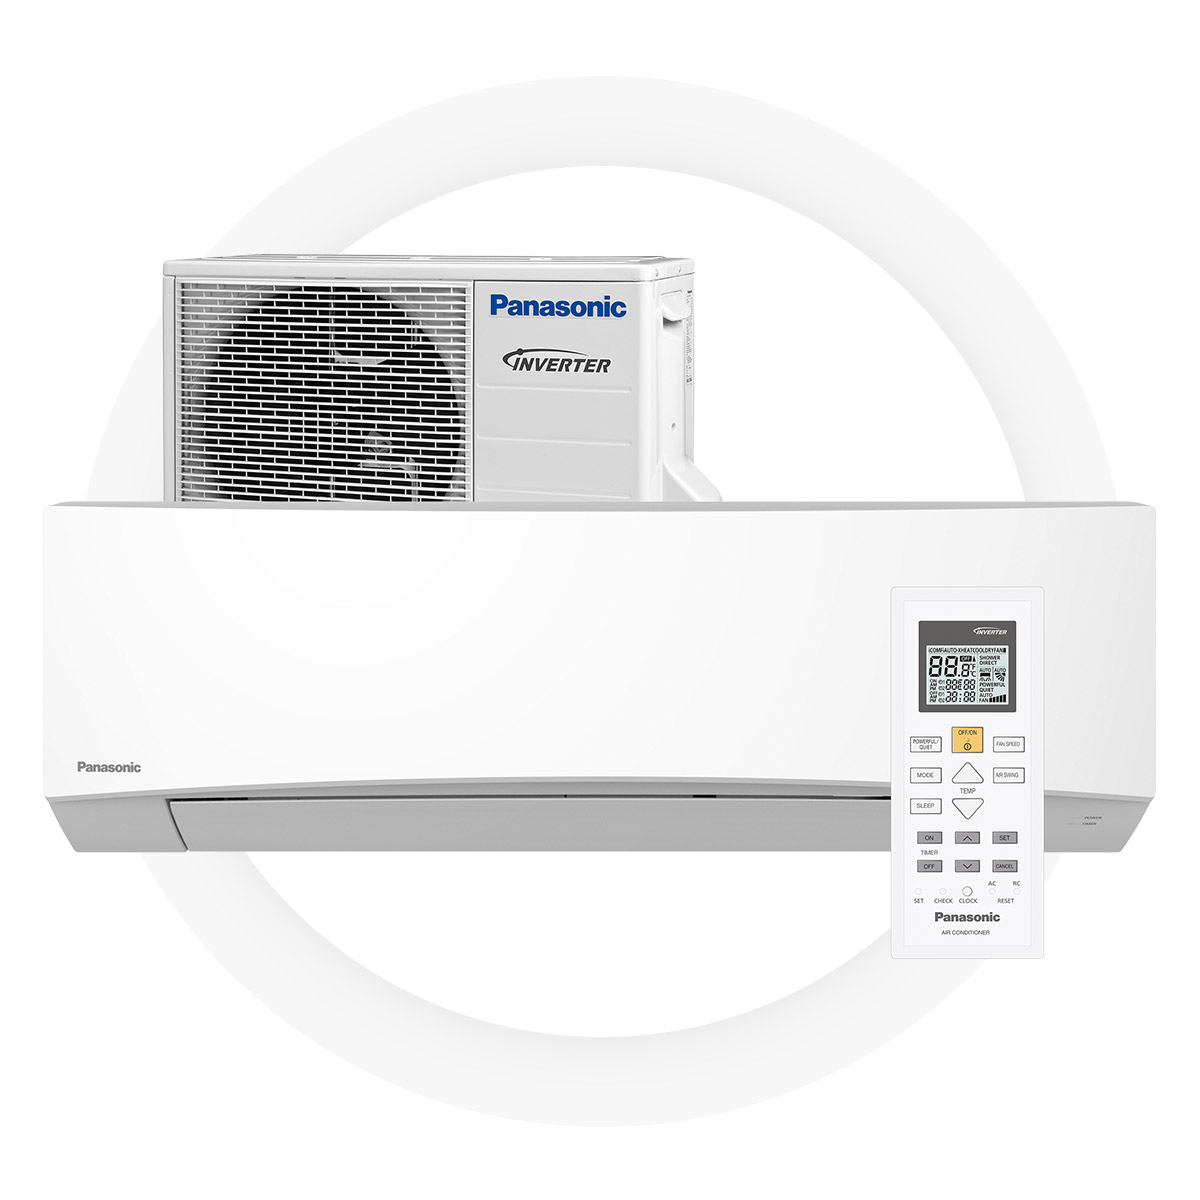 PANASONIC TZ25-TKE - High SCOP 4,2 offers significant savingsGood energy efficiency on heating – A+Silent work mode – just 20 dBEnvironmentally friendly R32 cold medium5 year full factory warranty by Panasonic